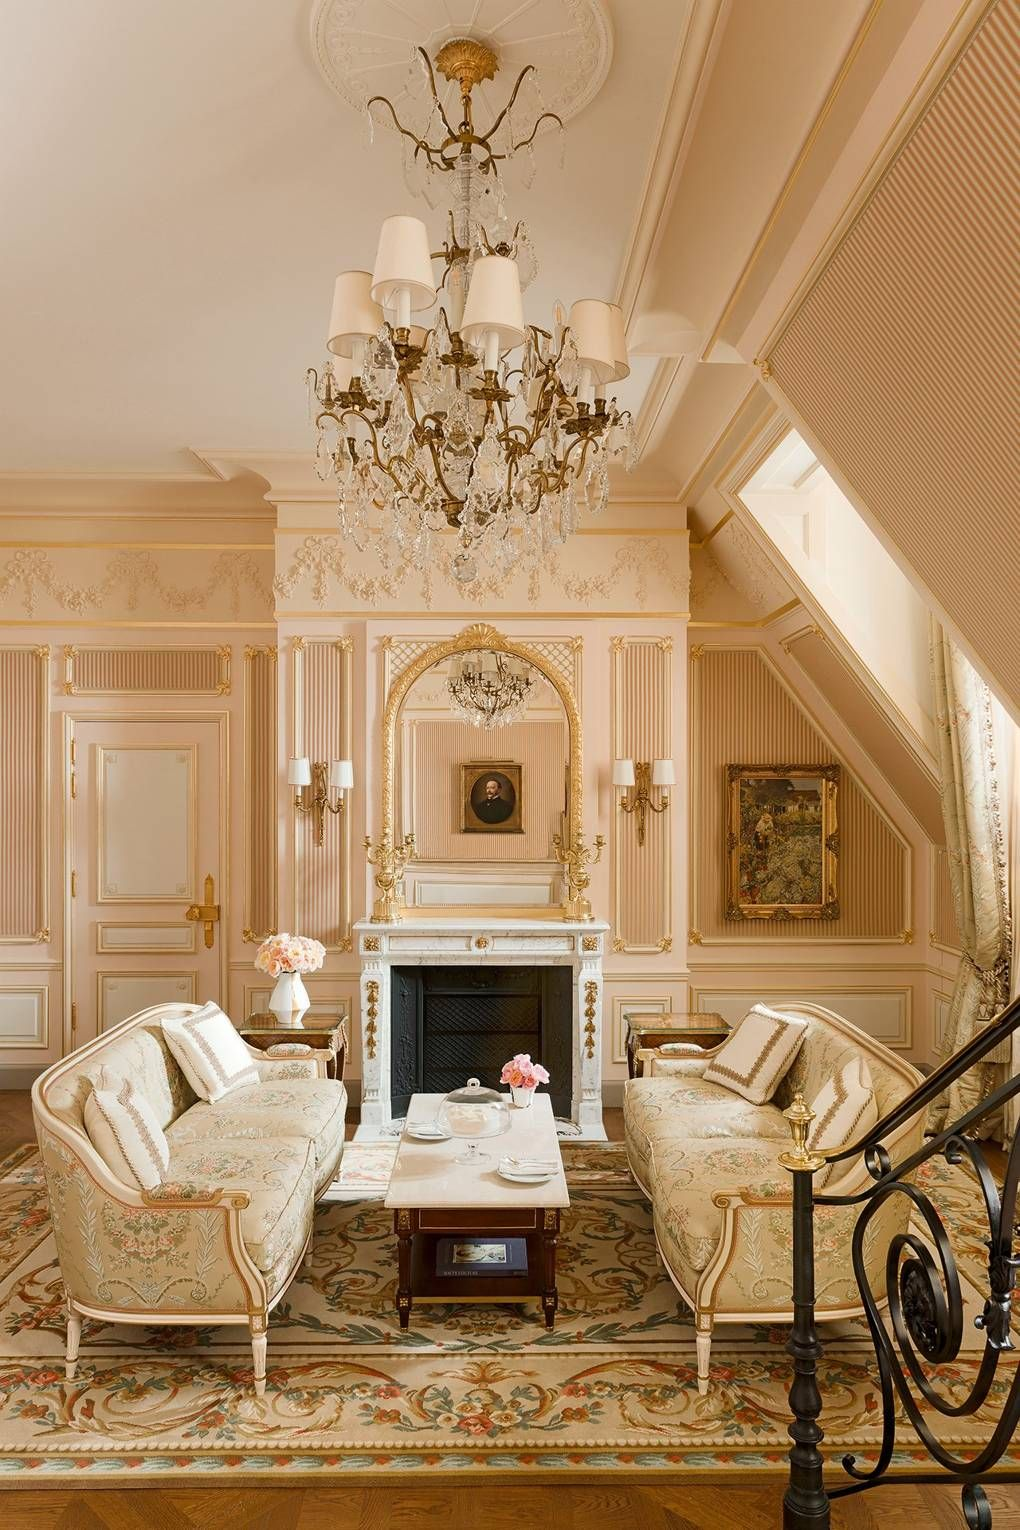 Inside the recently revamped ritz paris luxurious opulence